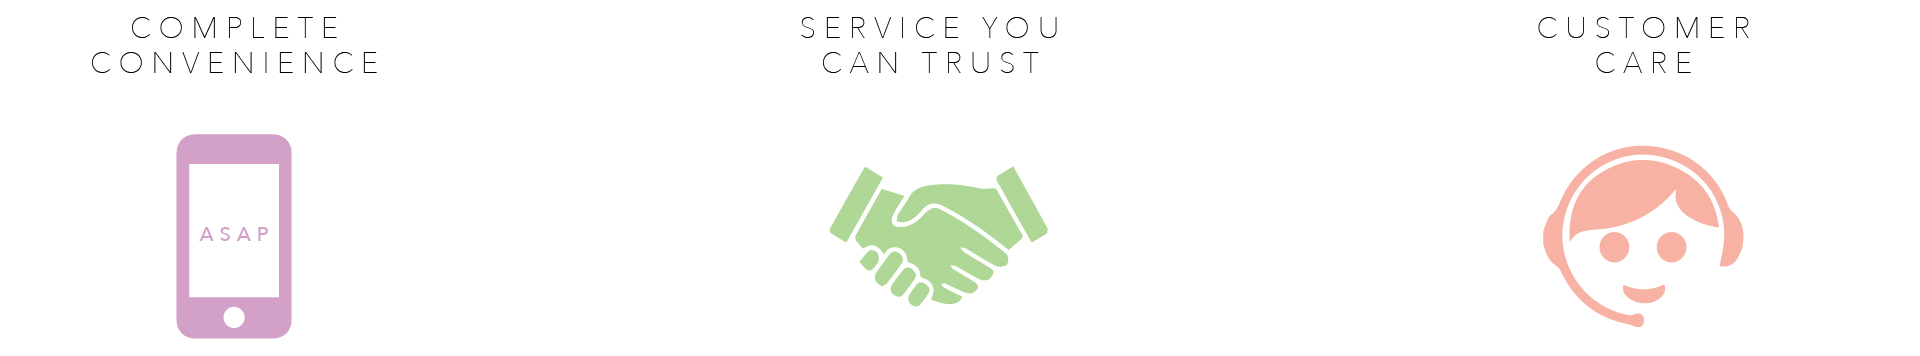 service you can trust